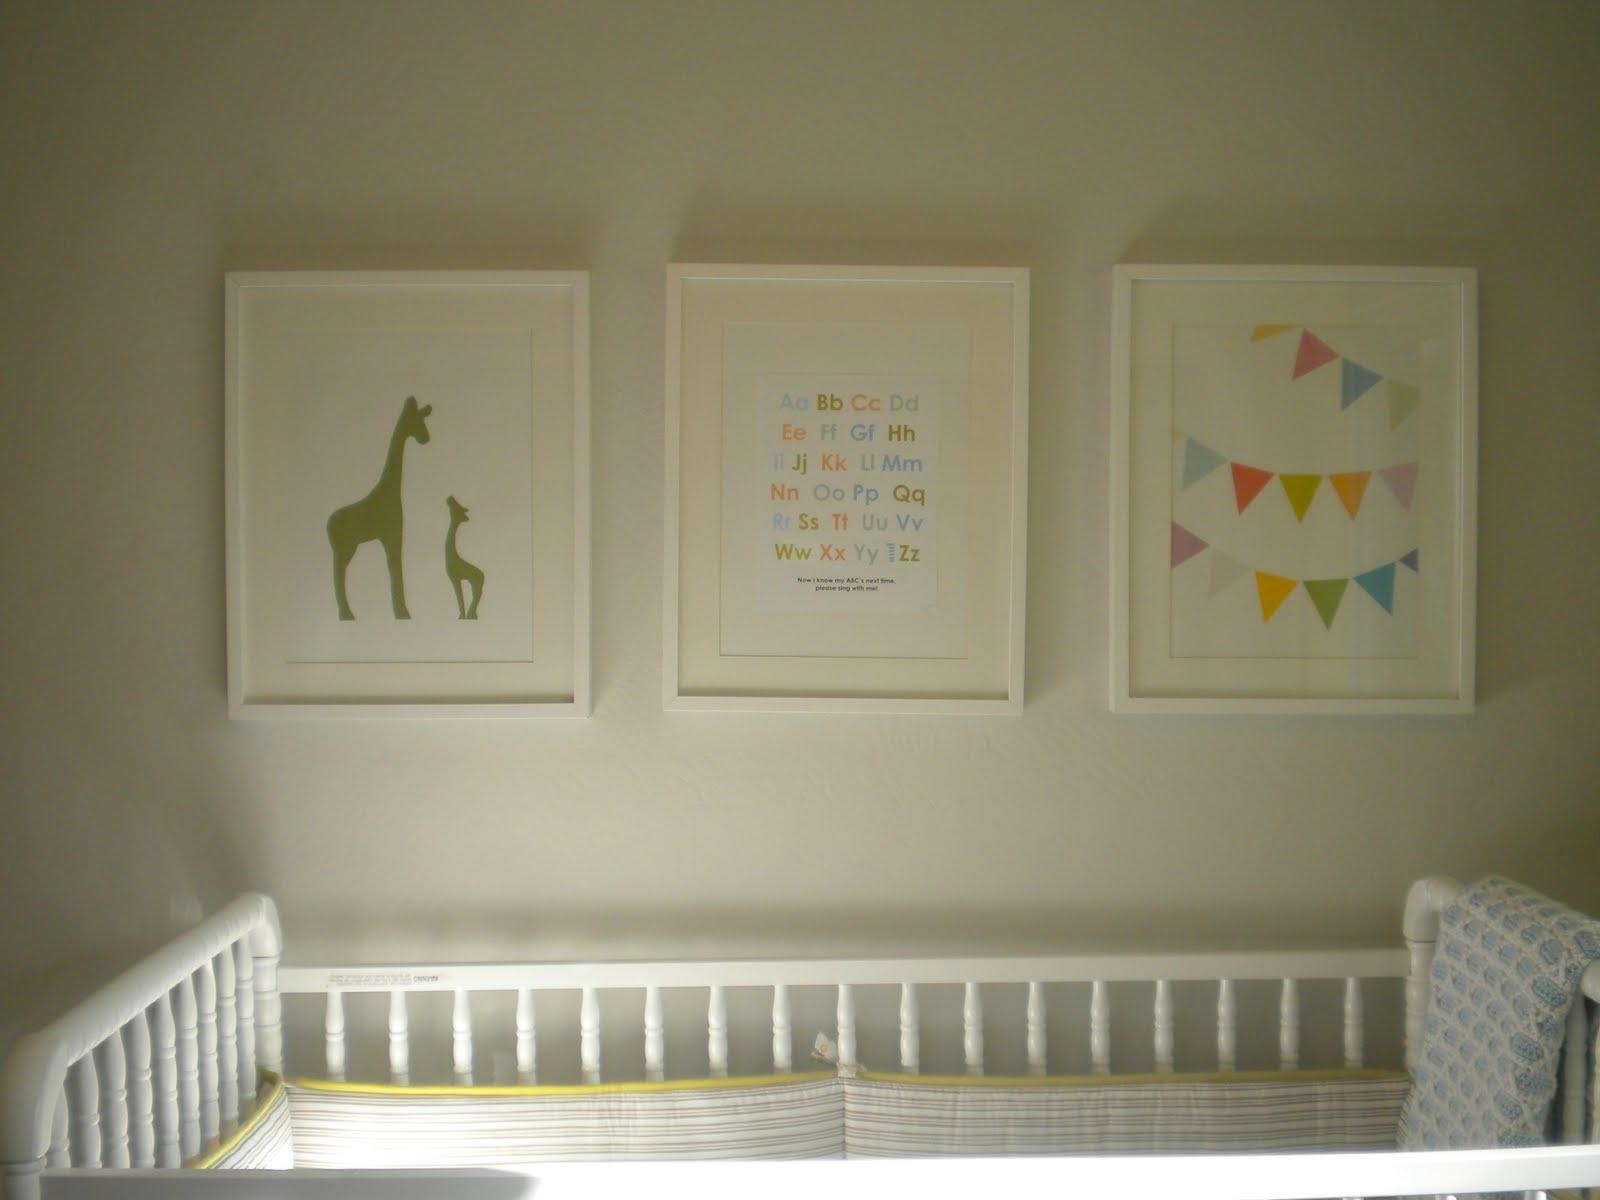 Framed Nursery Art ~ Thenurseries Intended For Nursery Framed Wall Art (Image 8 of 20)